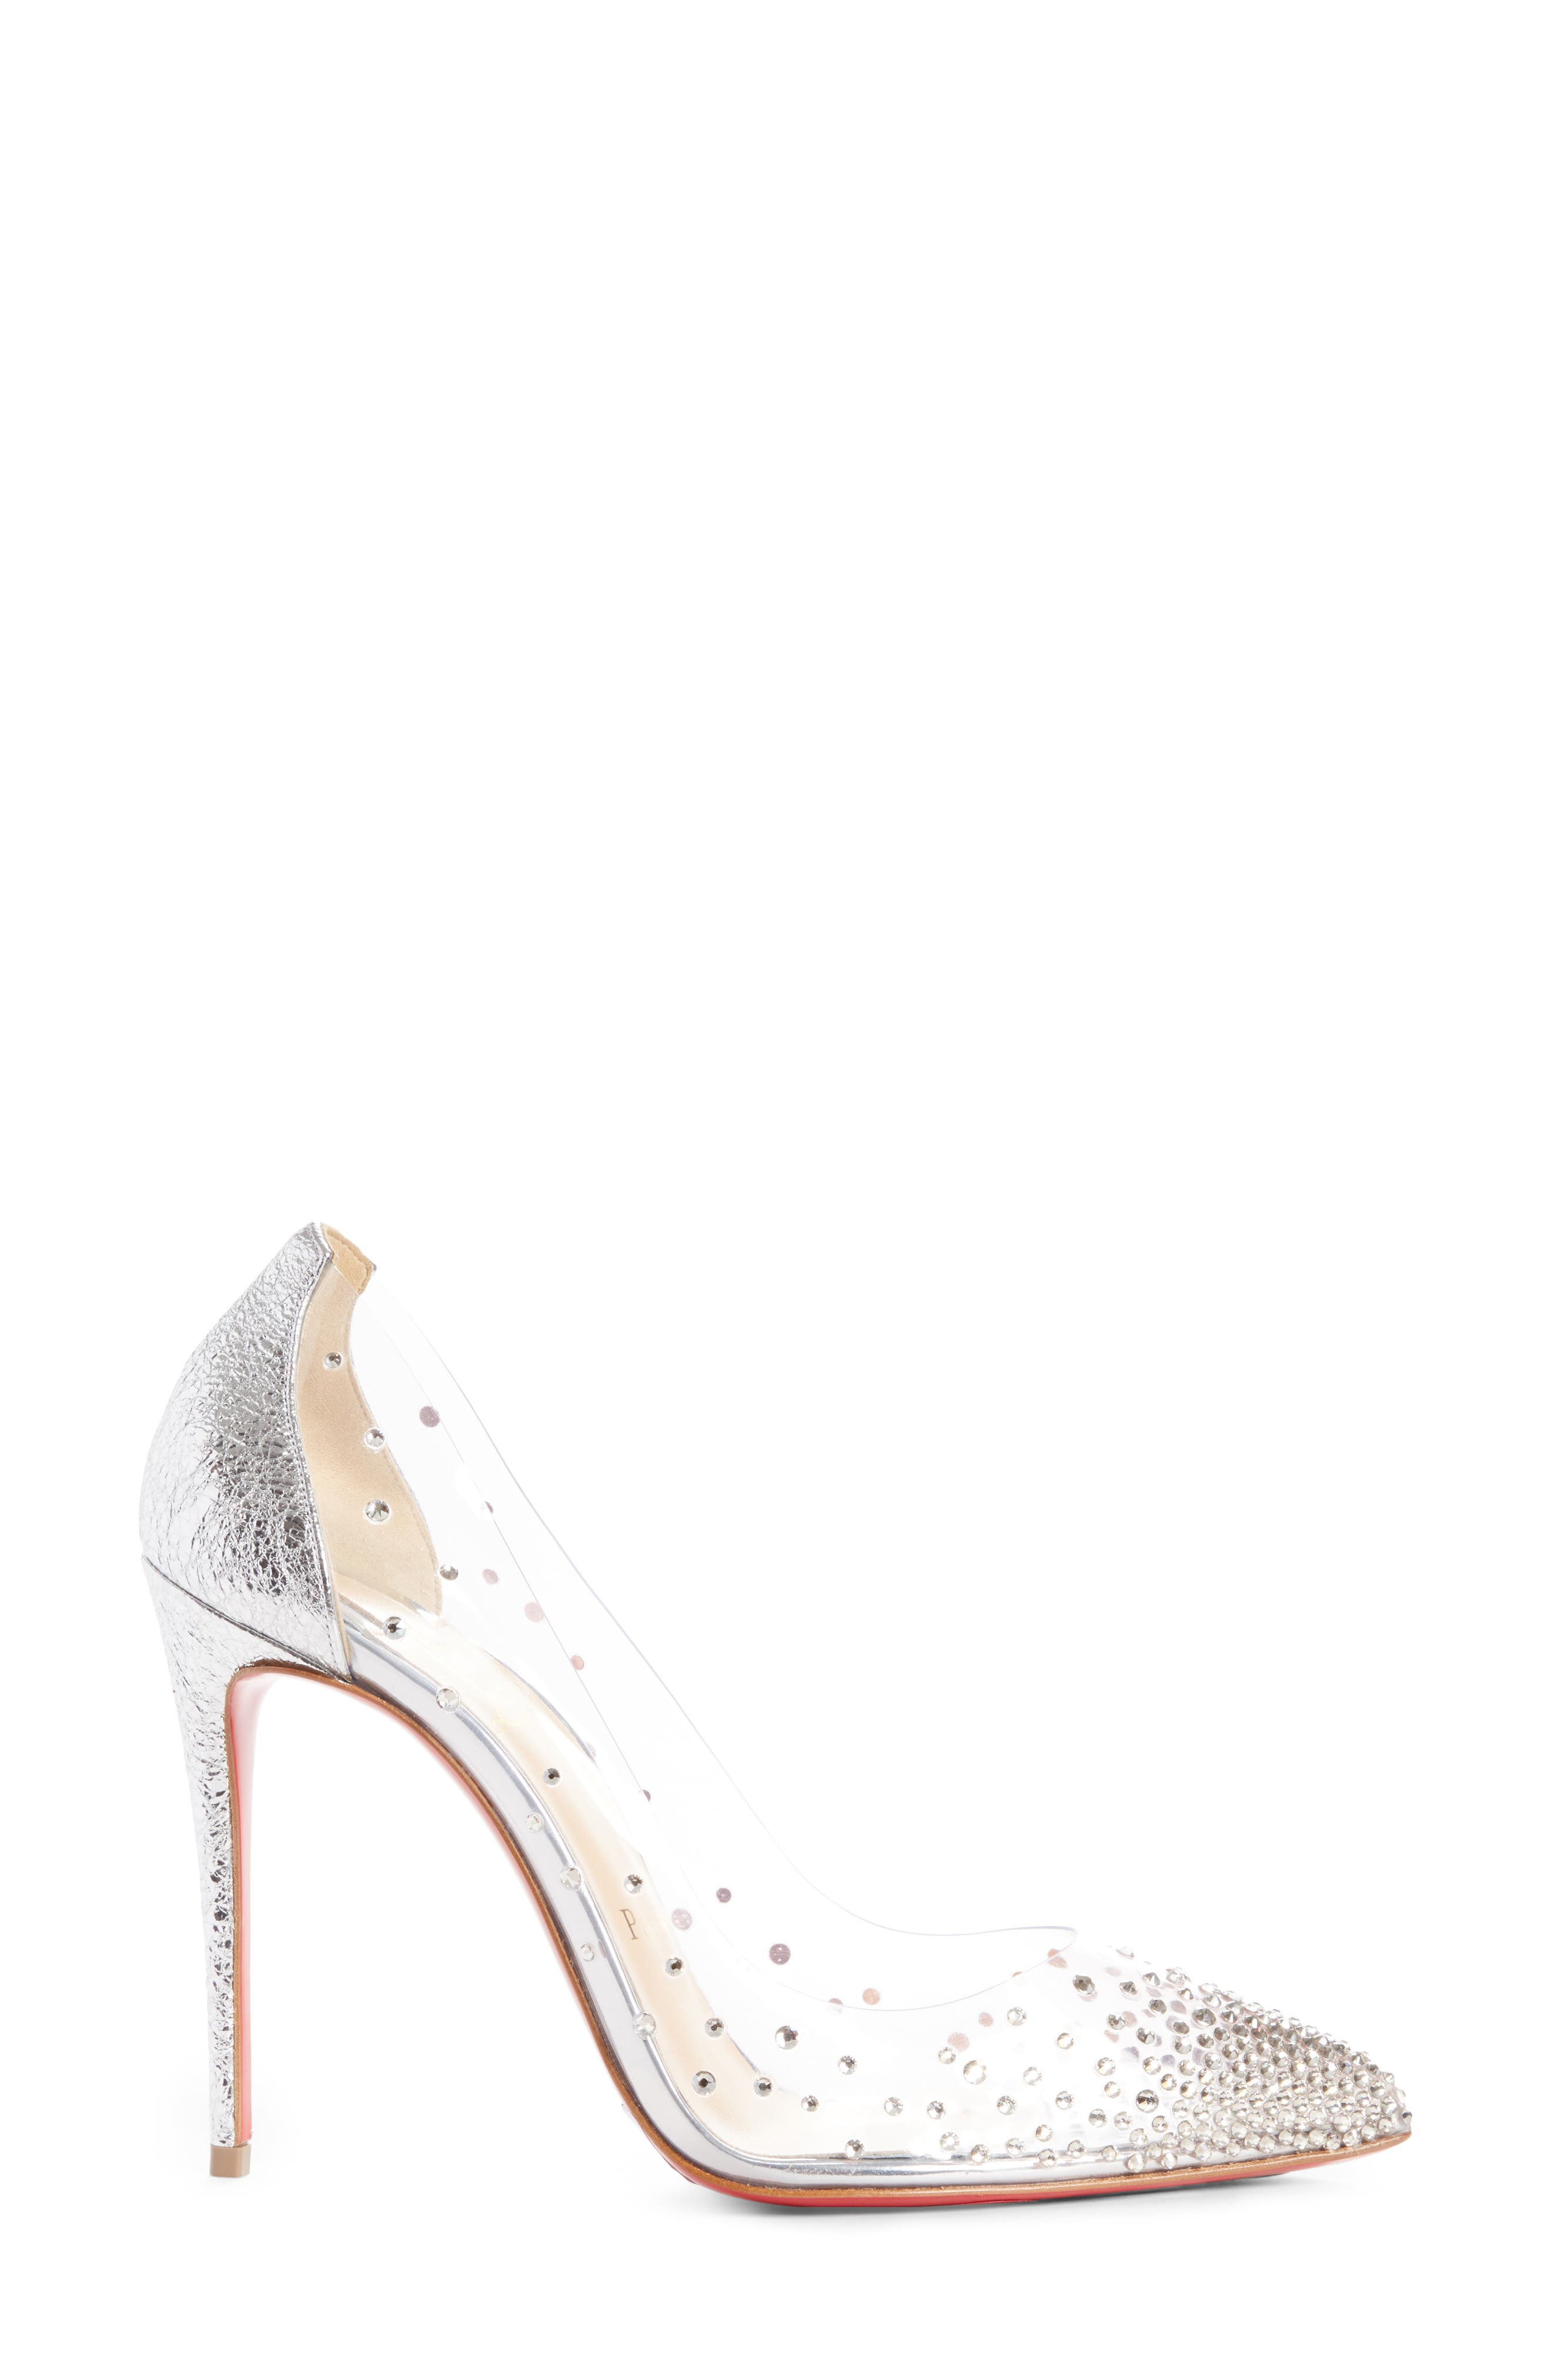 Degrastrass Clear Embellished Pump,                             Alternate thumbnail 3, color,                             Silver